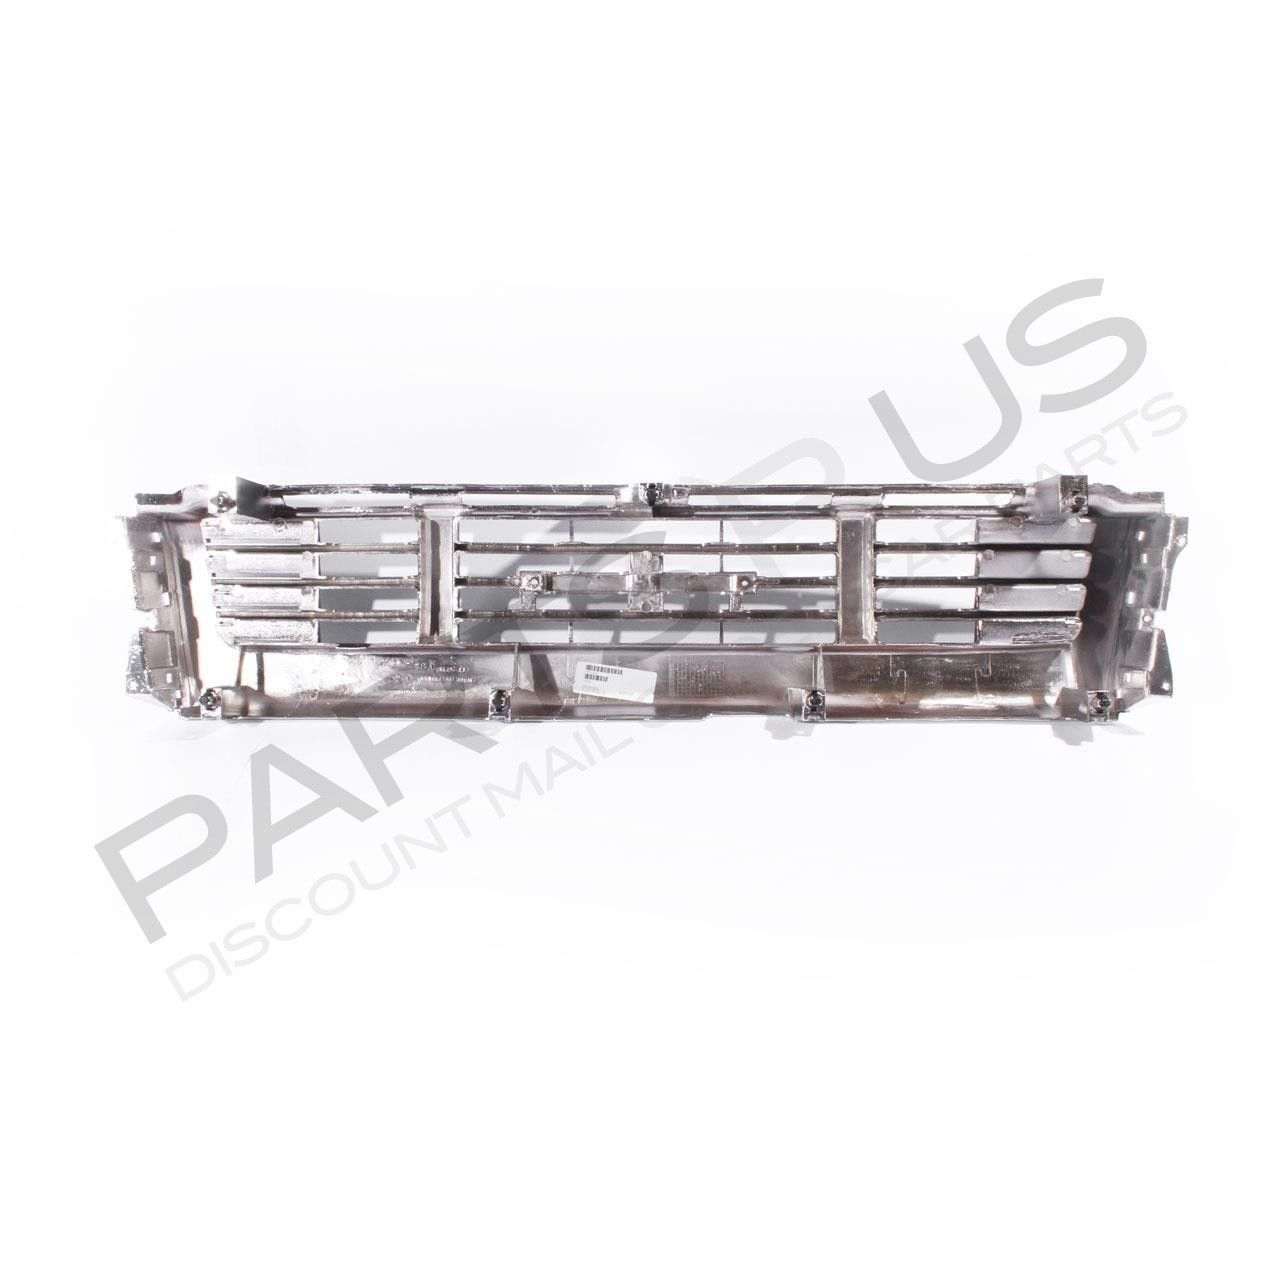 Grill Toyota Hilux 10 8 10 91 4wd Ute Front Chrome Grille